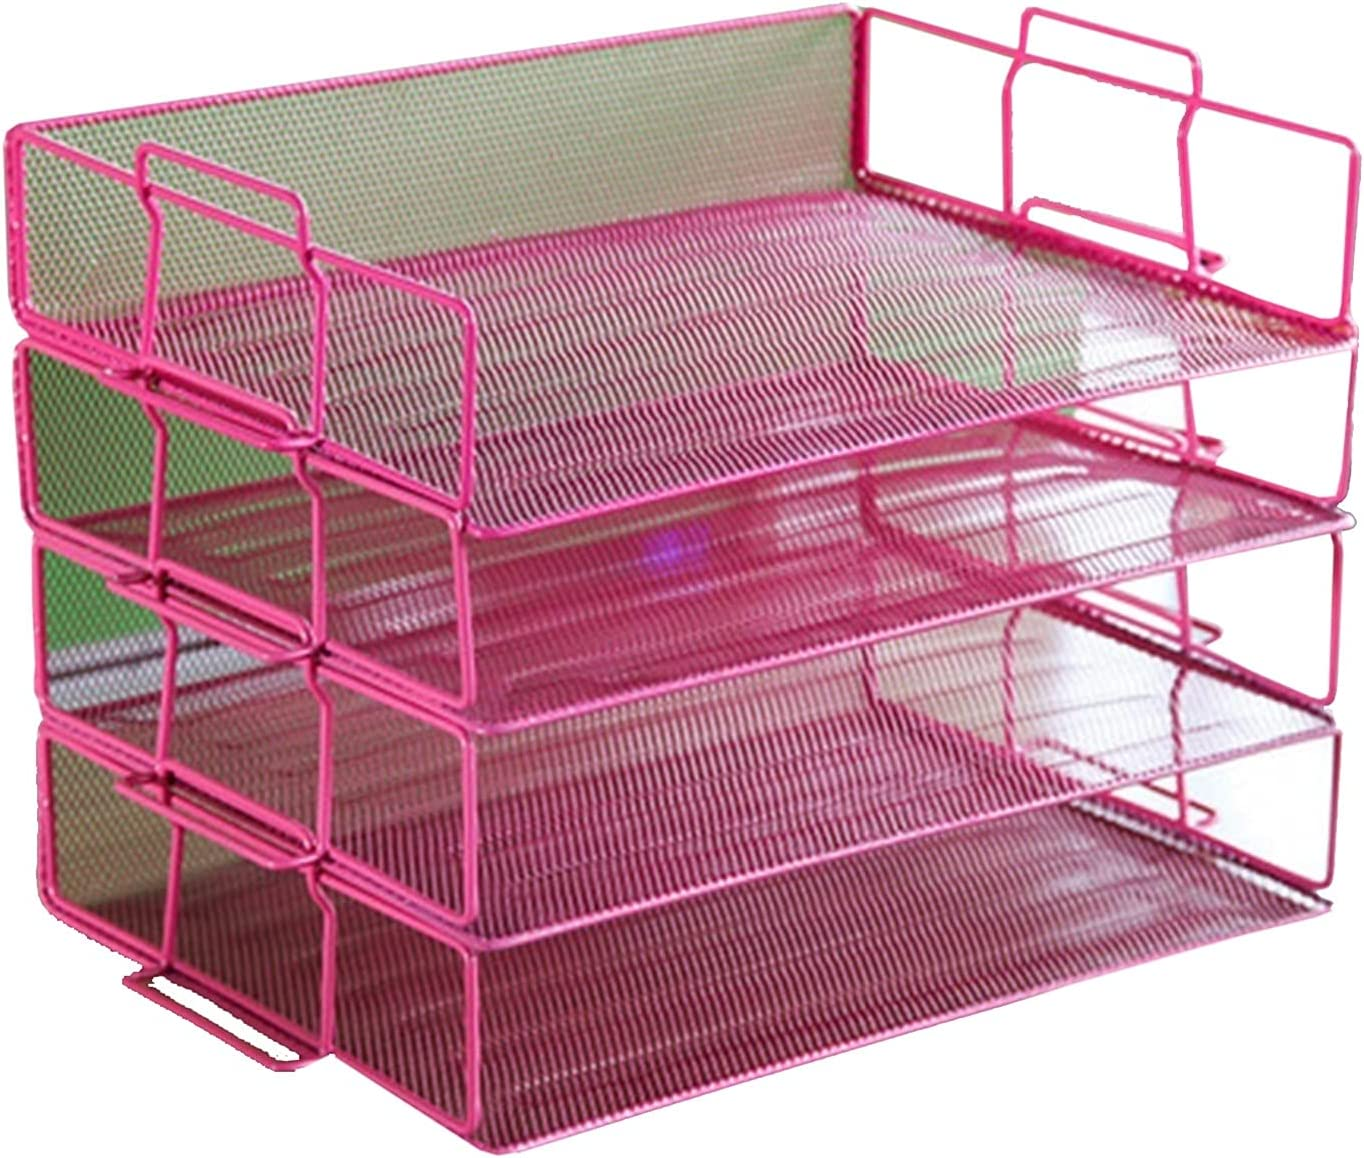 MZQ Letter Trays Stacking 70% Under blast sales OFF Outlet Multifunction Supports Pink T